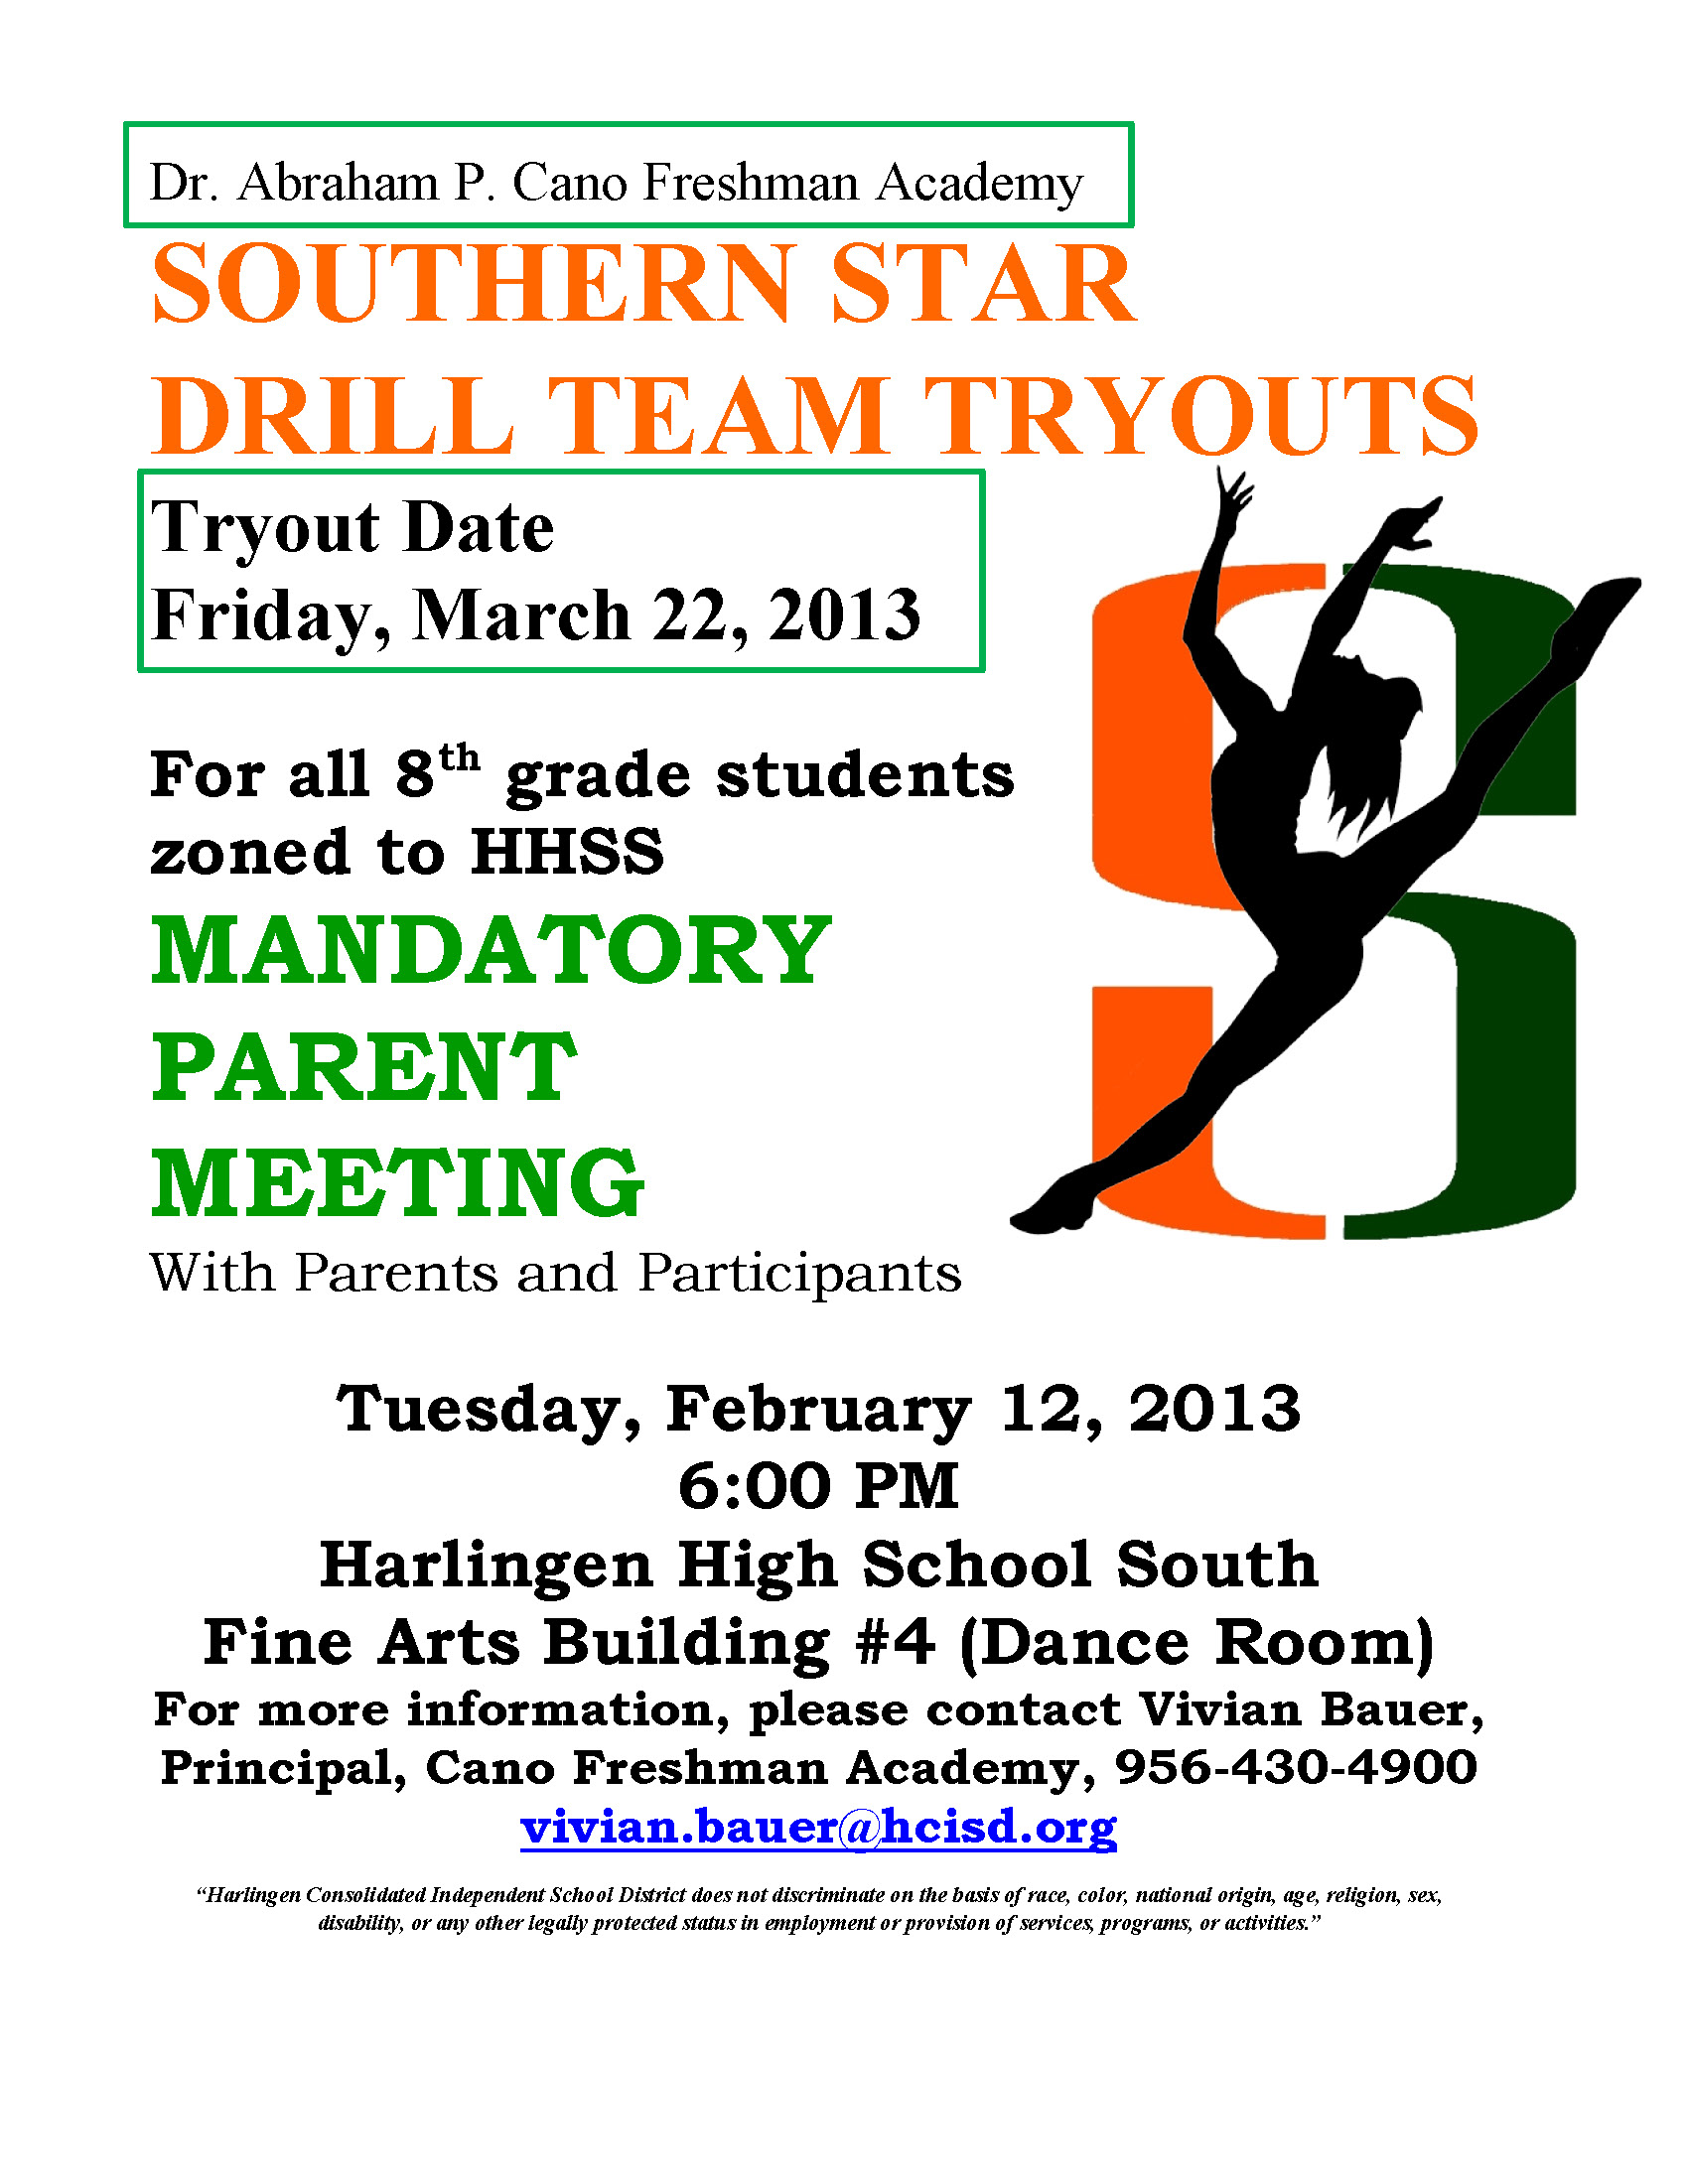 Cano Freshman Academy, HHSS to host drill team tryouts